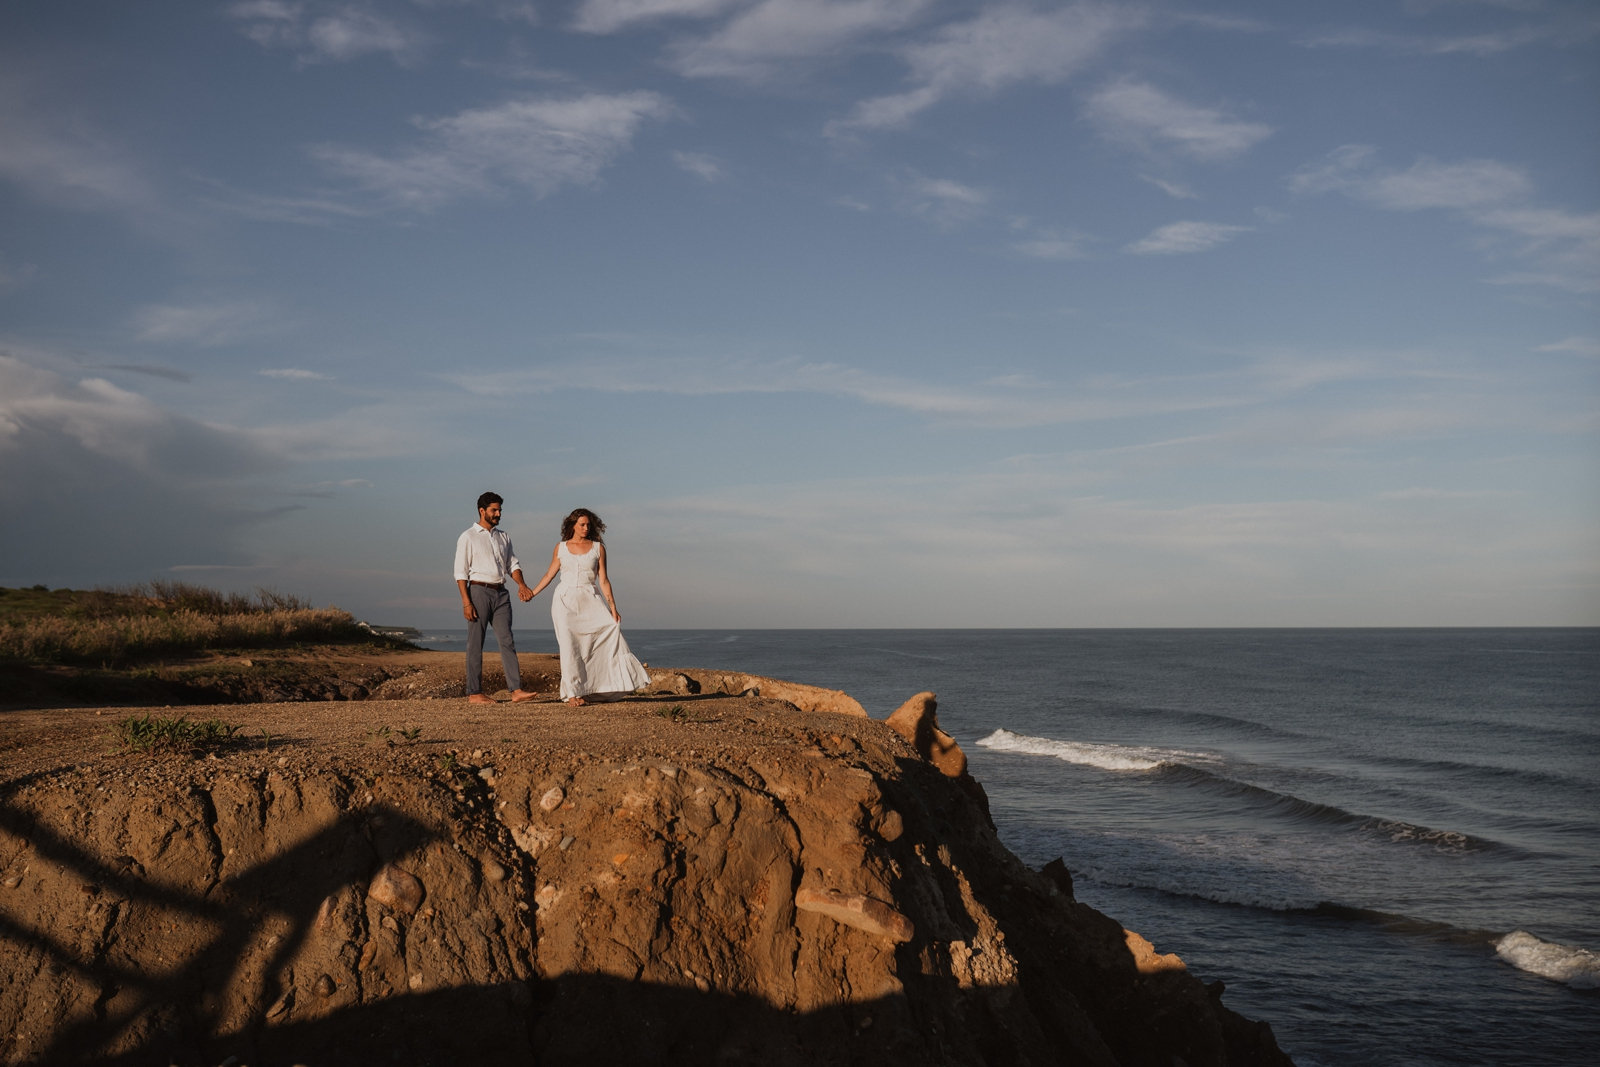 JJP_Nikki & Bud_Shadmoor_Montauk_NY_Cliff Engagement Session21.jpg_blog.jpg